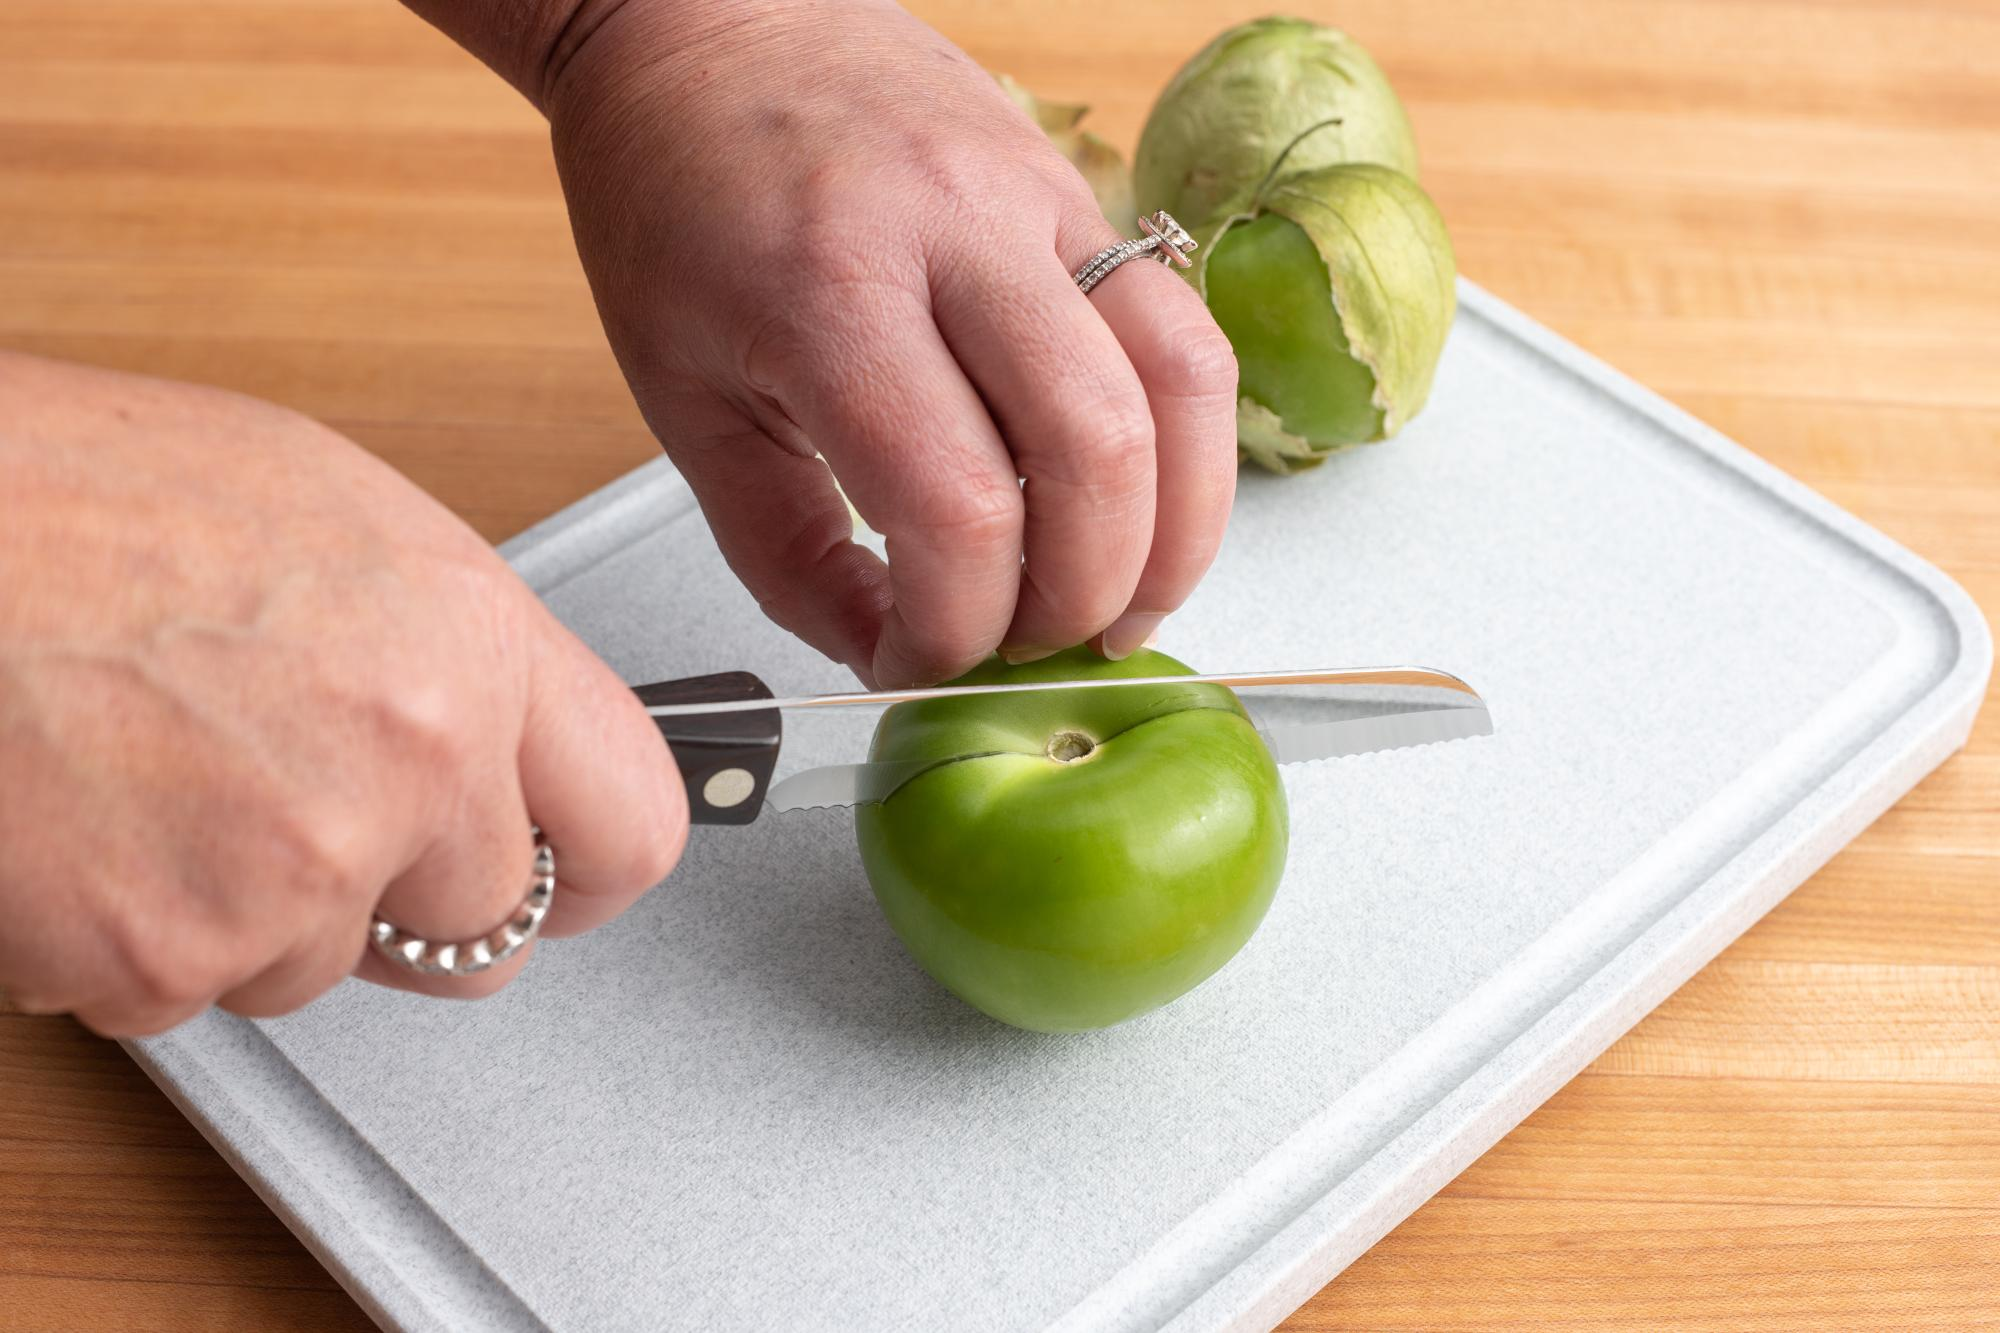 Using the Santoku-Style Trimmer to cut the tomatillos.